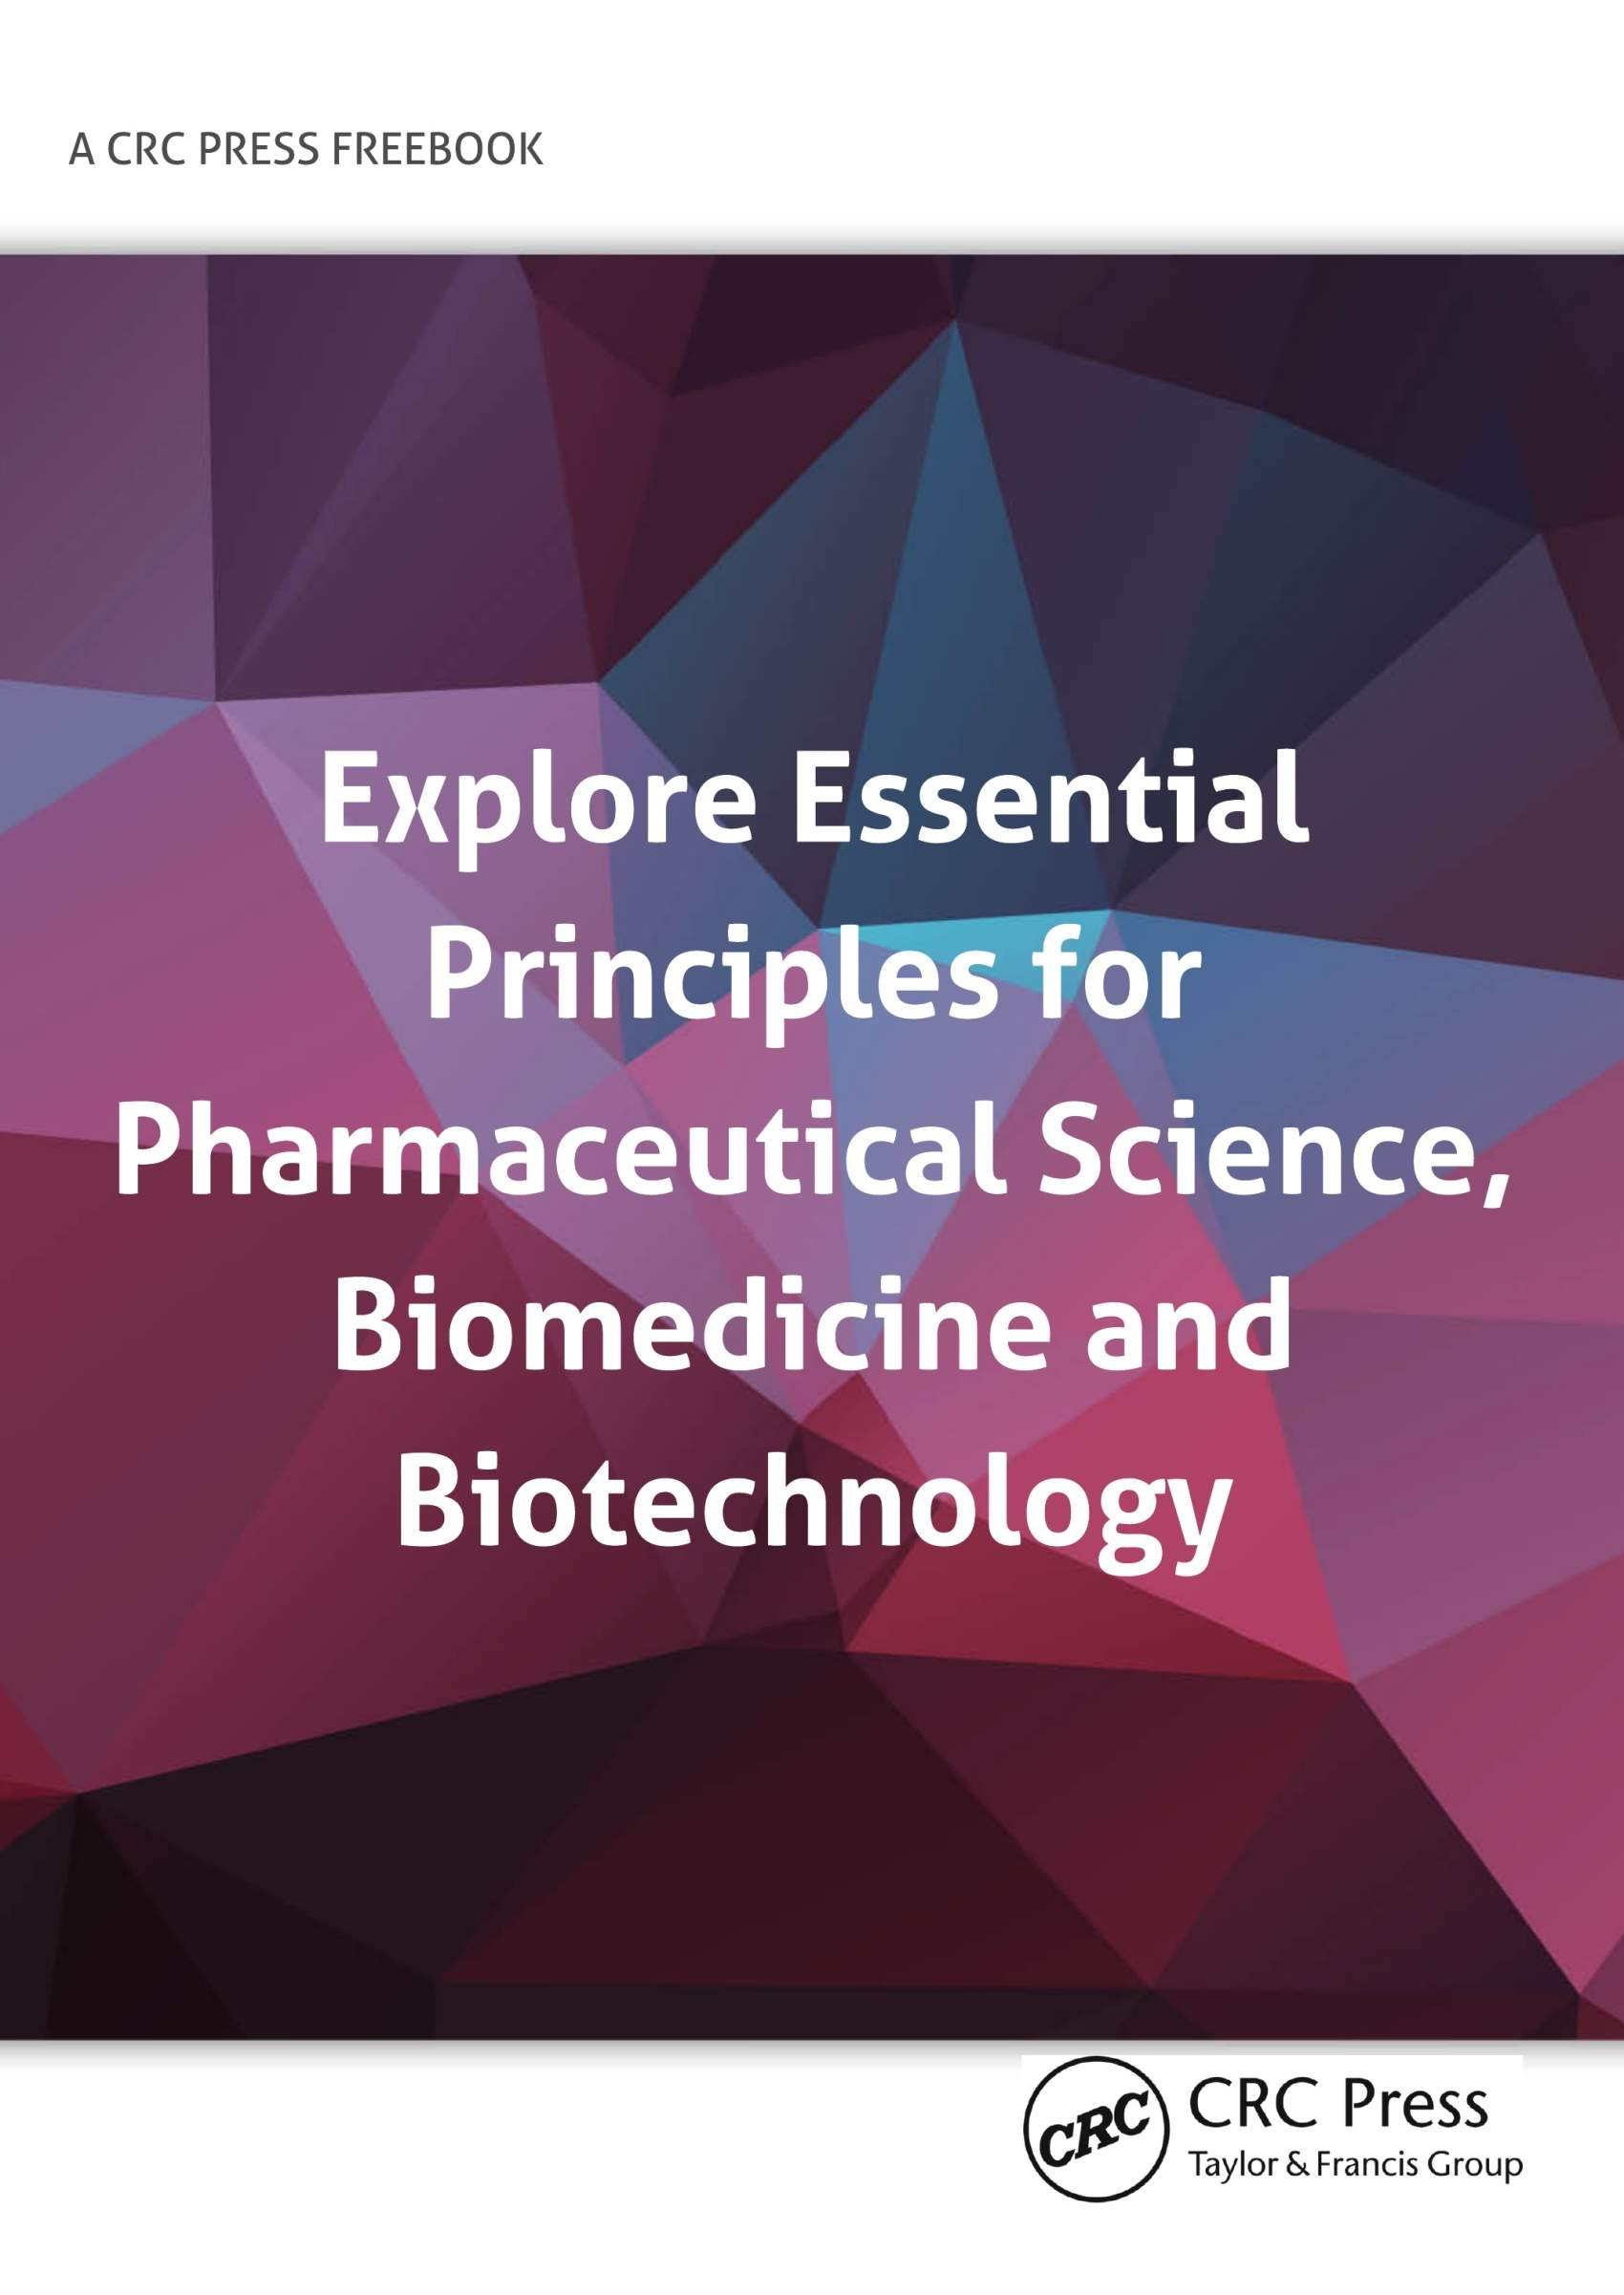 FreeBook: Explore Essential Principles for Pharmaceutical Science, Biomedicine and Biotechnology Marketing